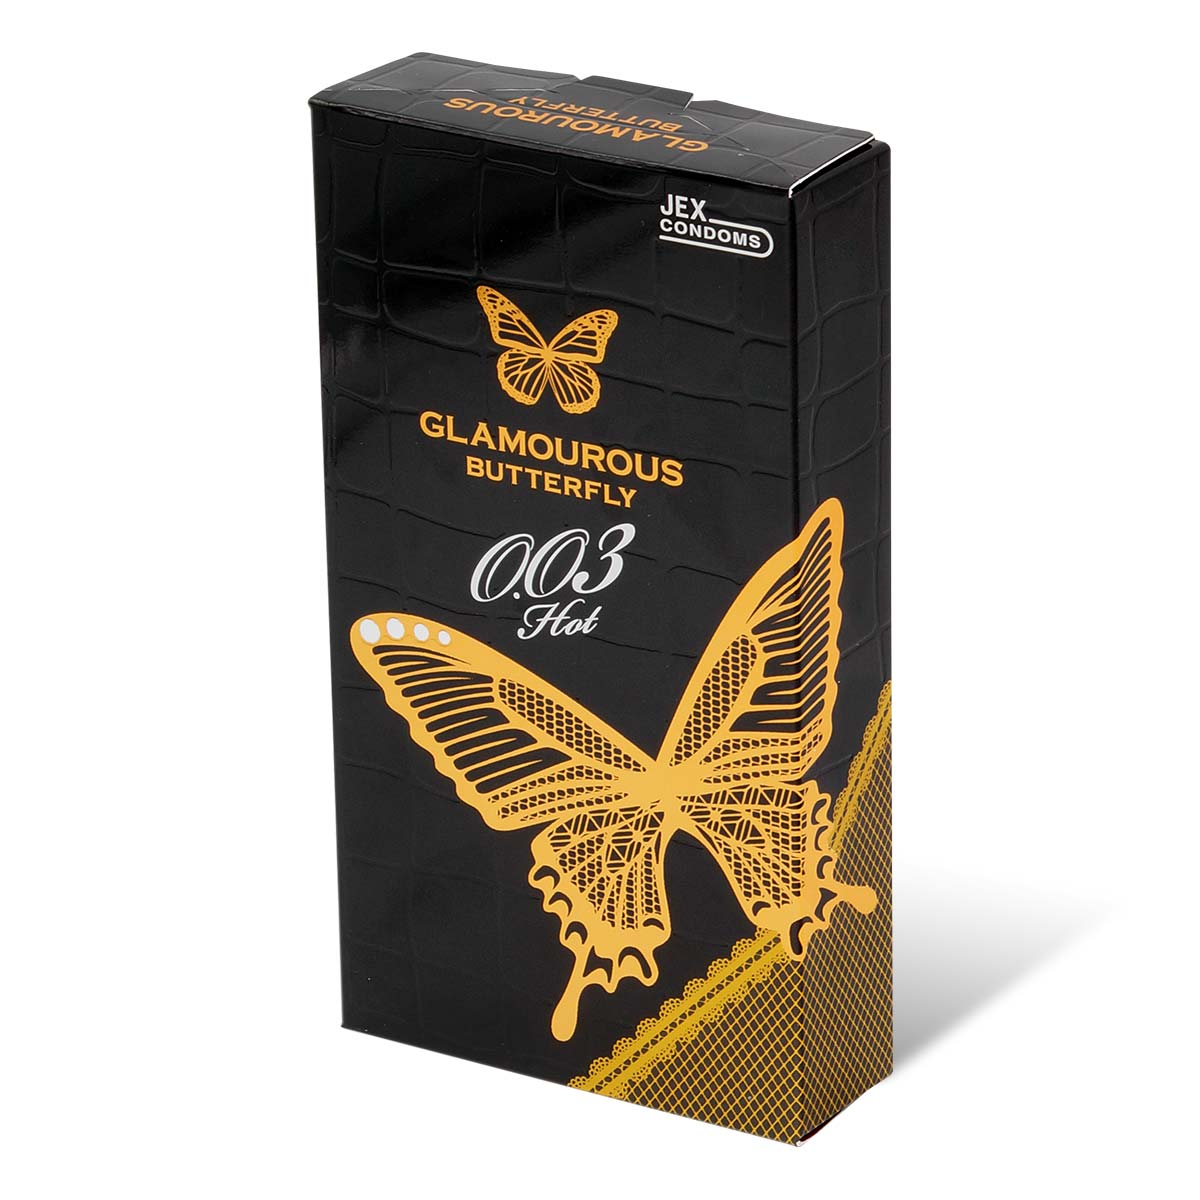 Glamourous Butterfly 0.03 Hot Type 10's Pack Latex Condom